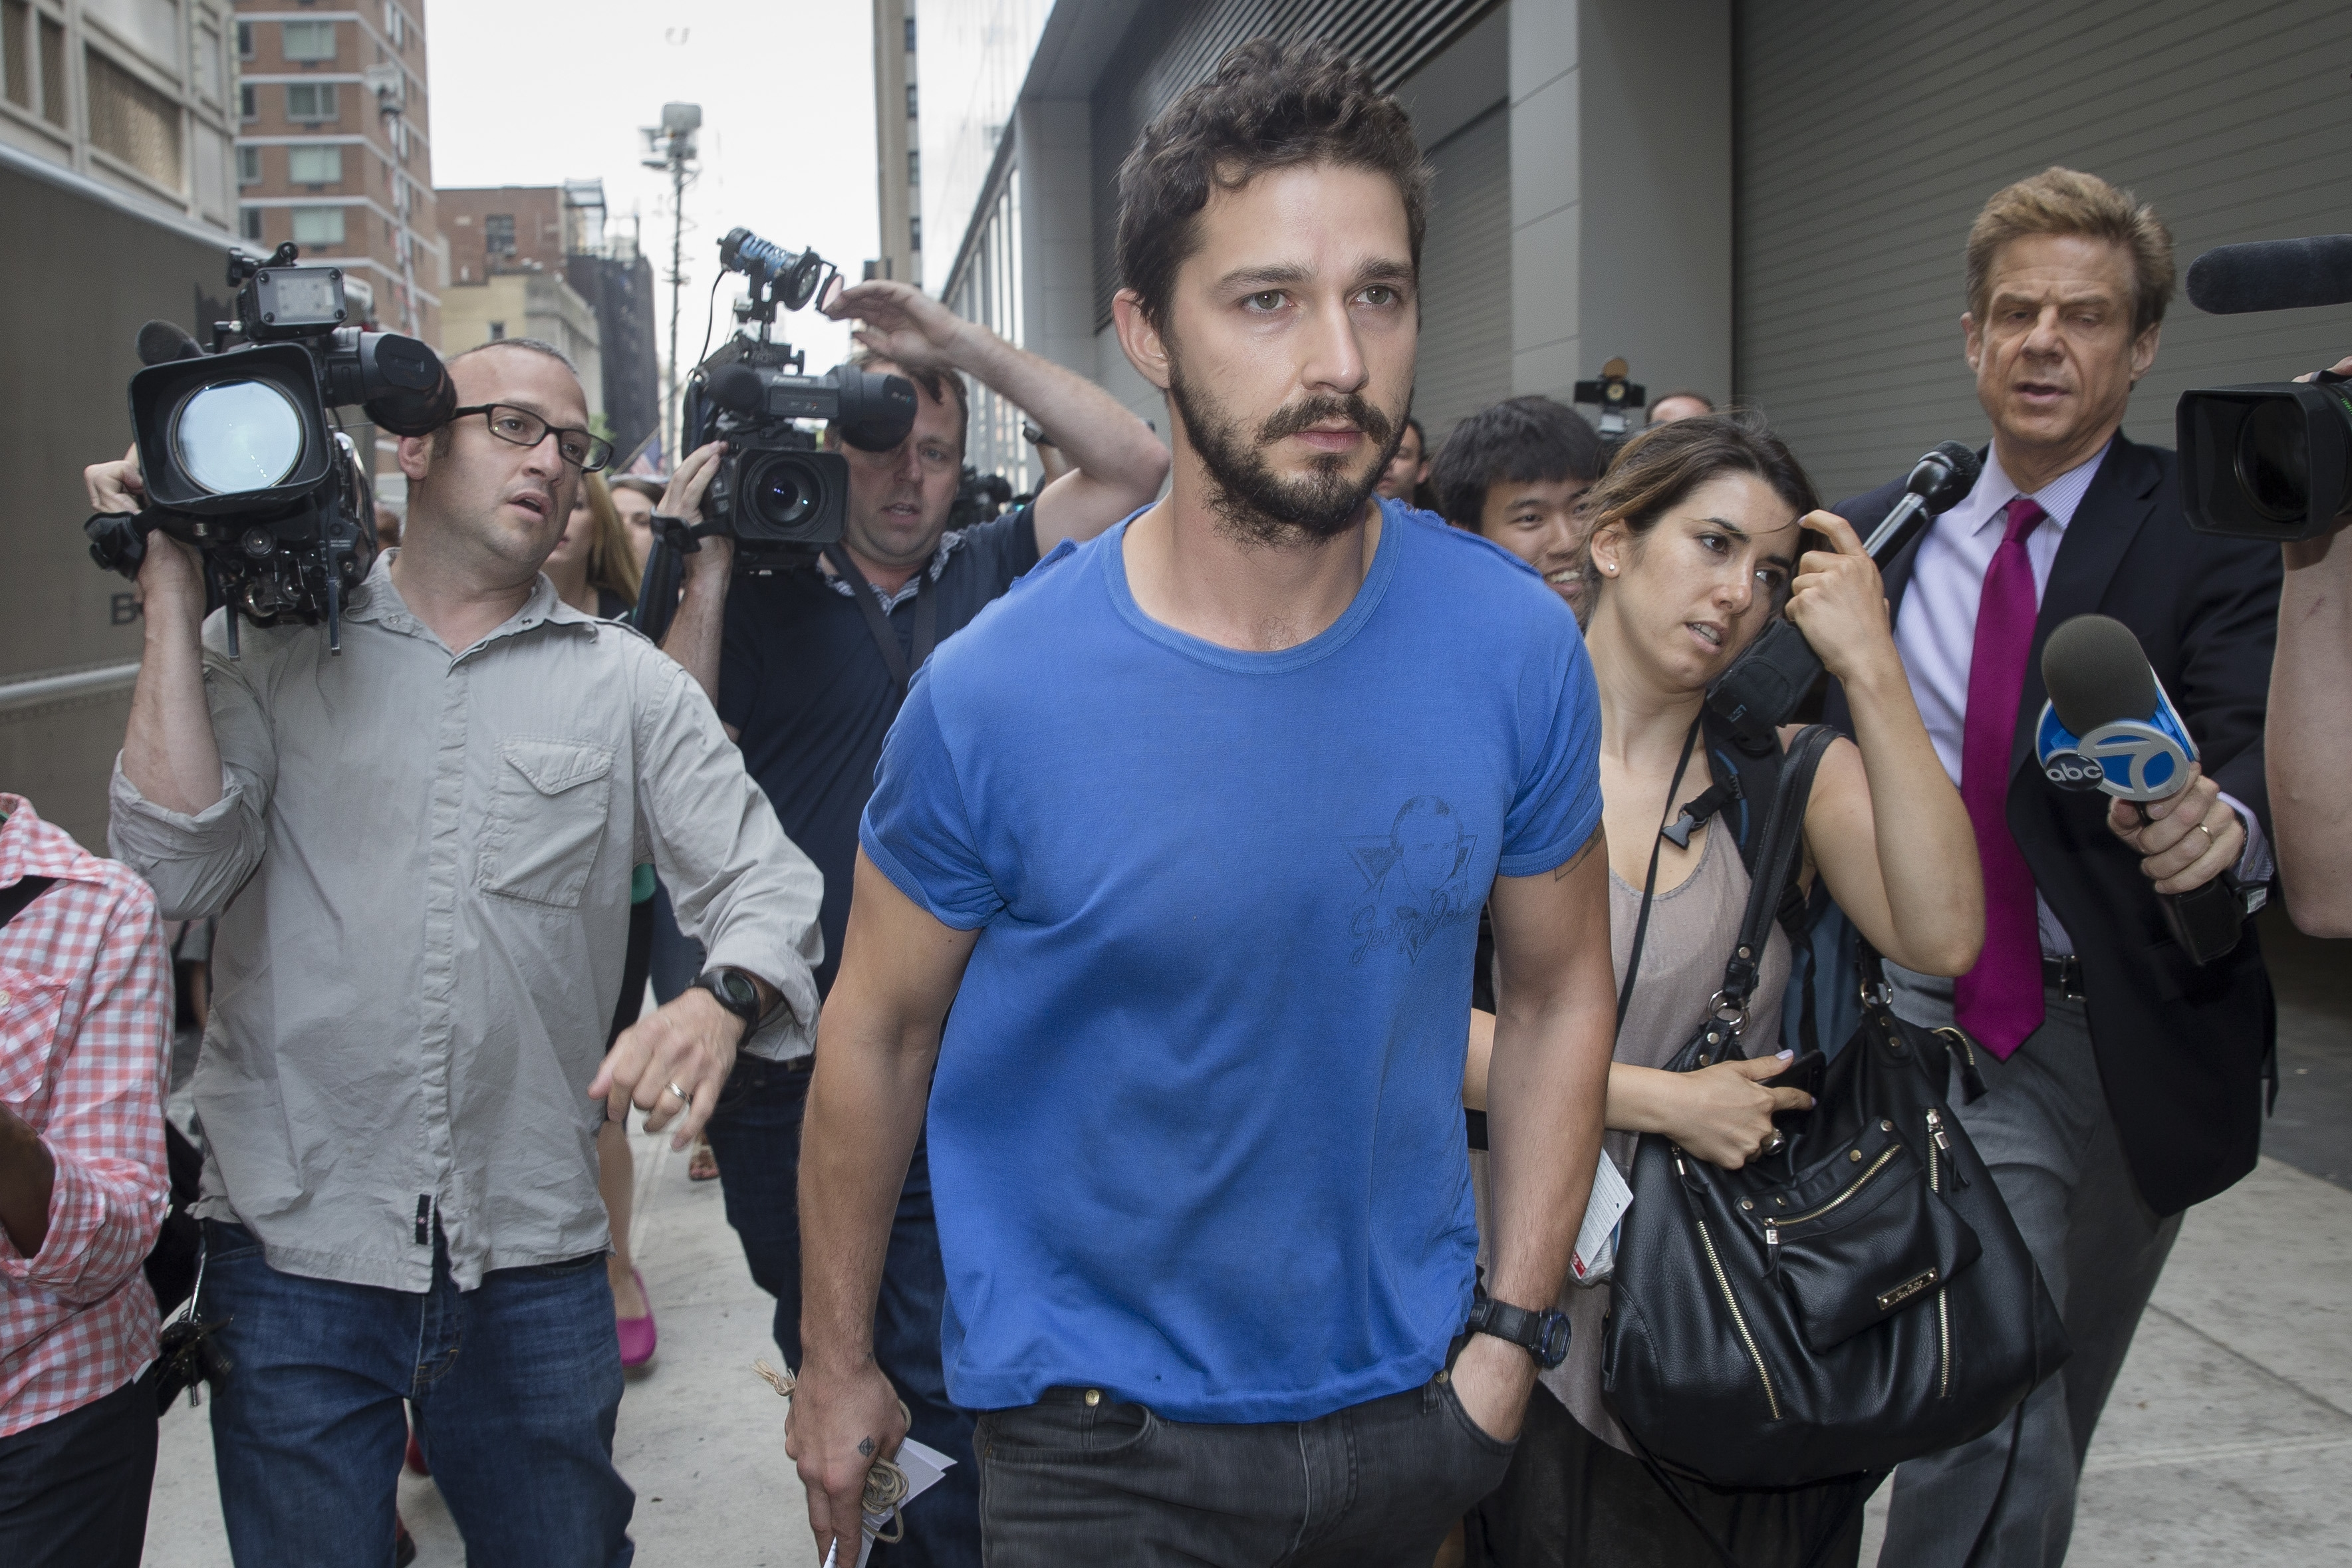 Actor Shia LaBeouf leaves Midtown Community Court in Manhattan following his arrest June 27.